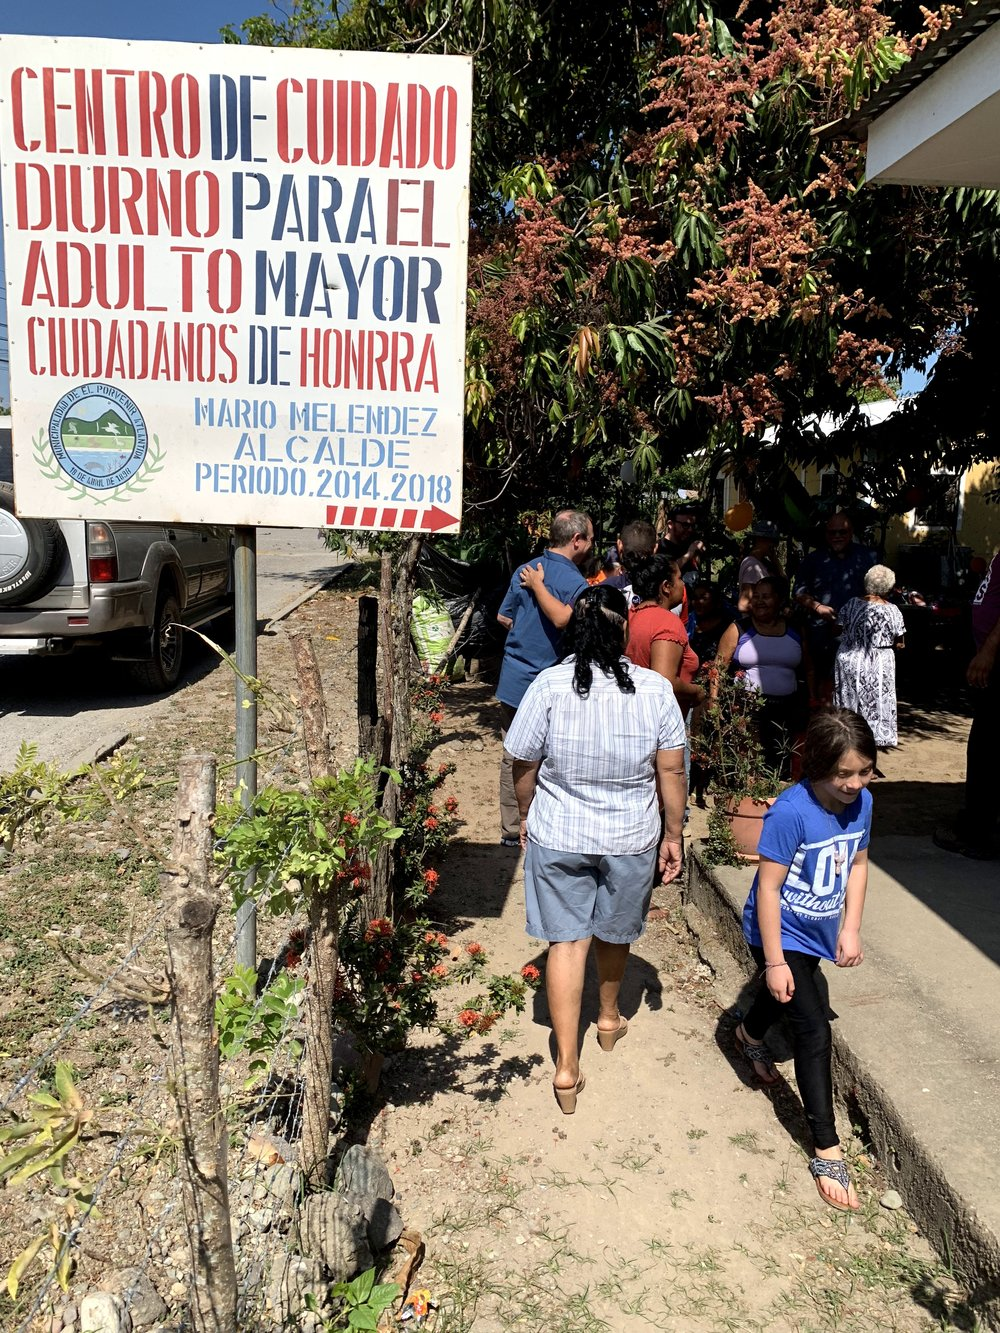 Connect Global is always looking for new ways to connect with and impact citizens of all ages in Honduras.